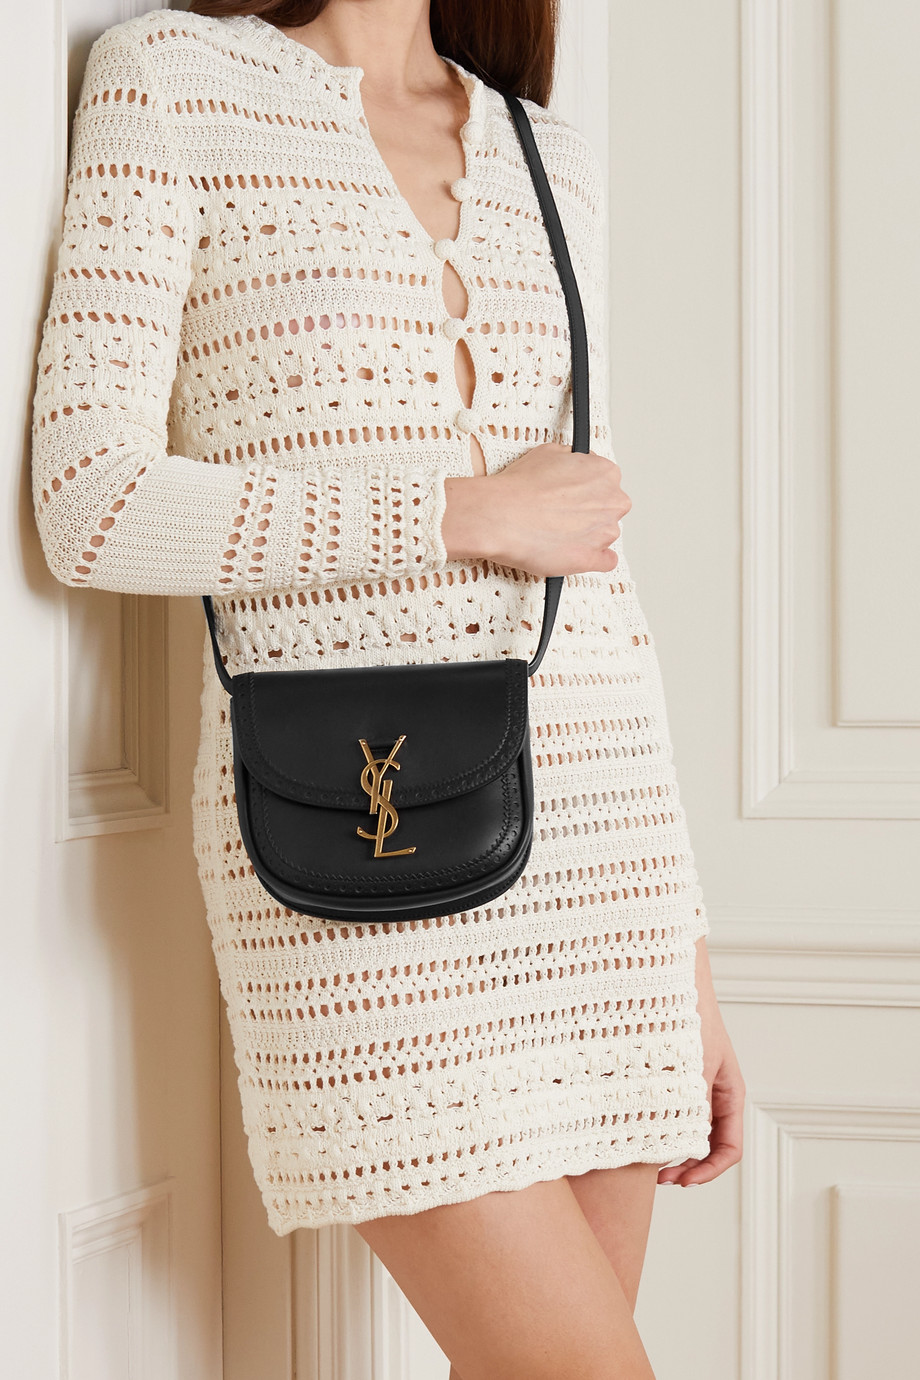 SAINT LAURENT Kaia small perforated leather shoulder bag